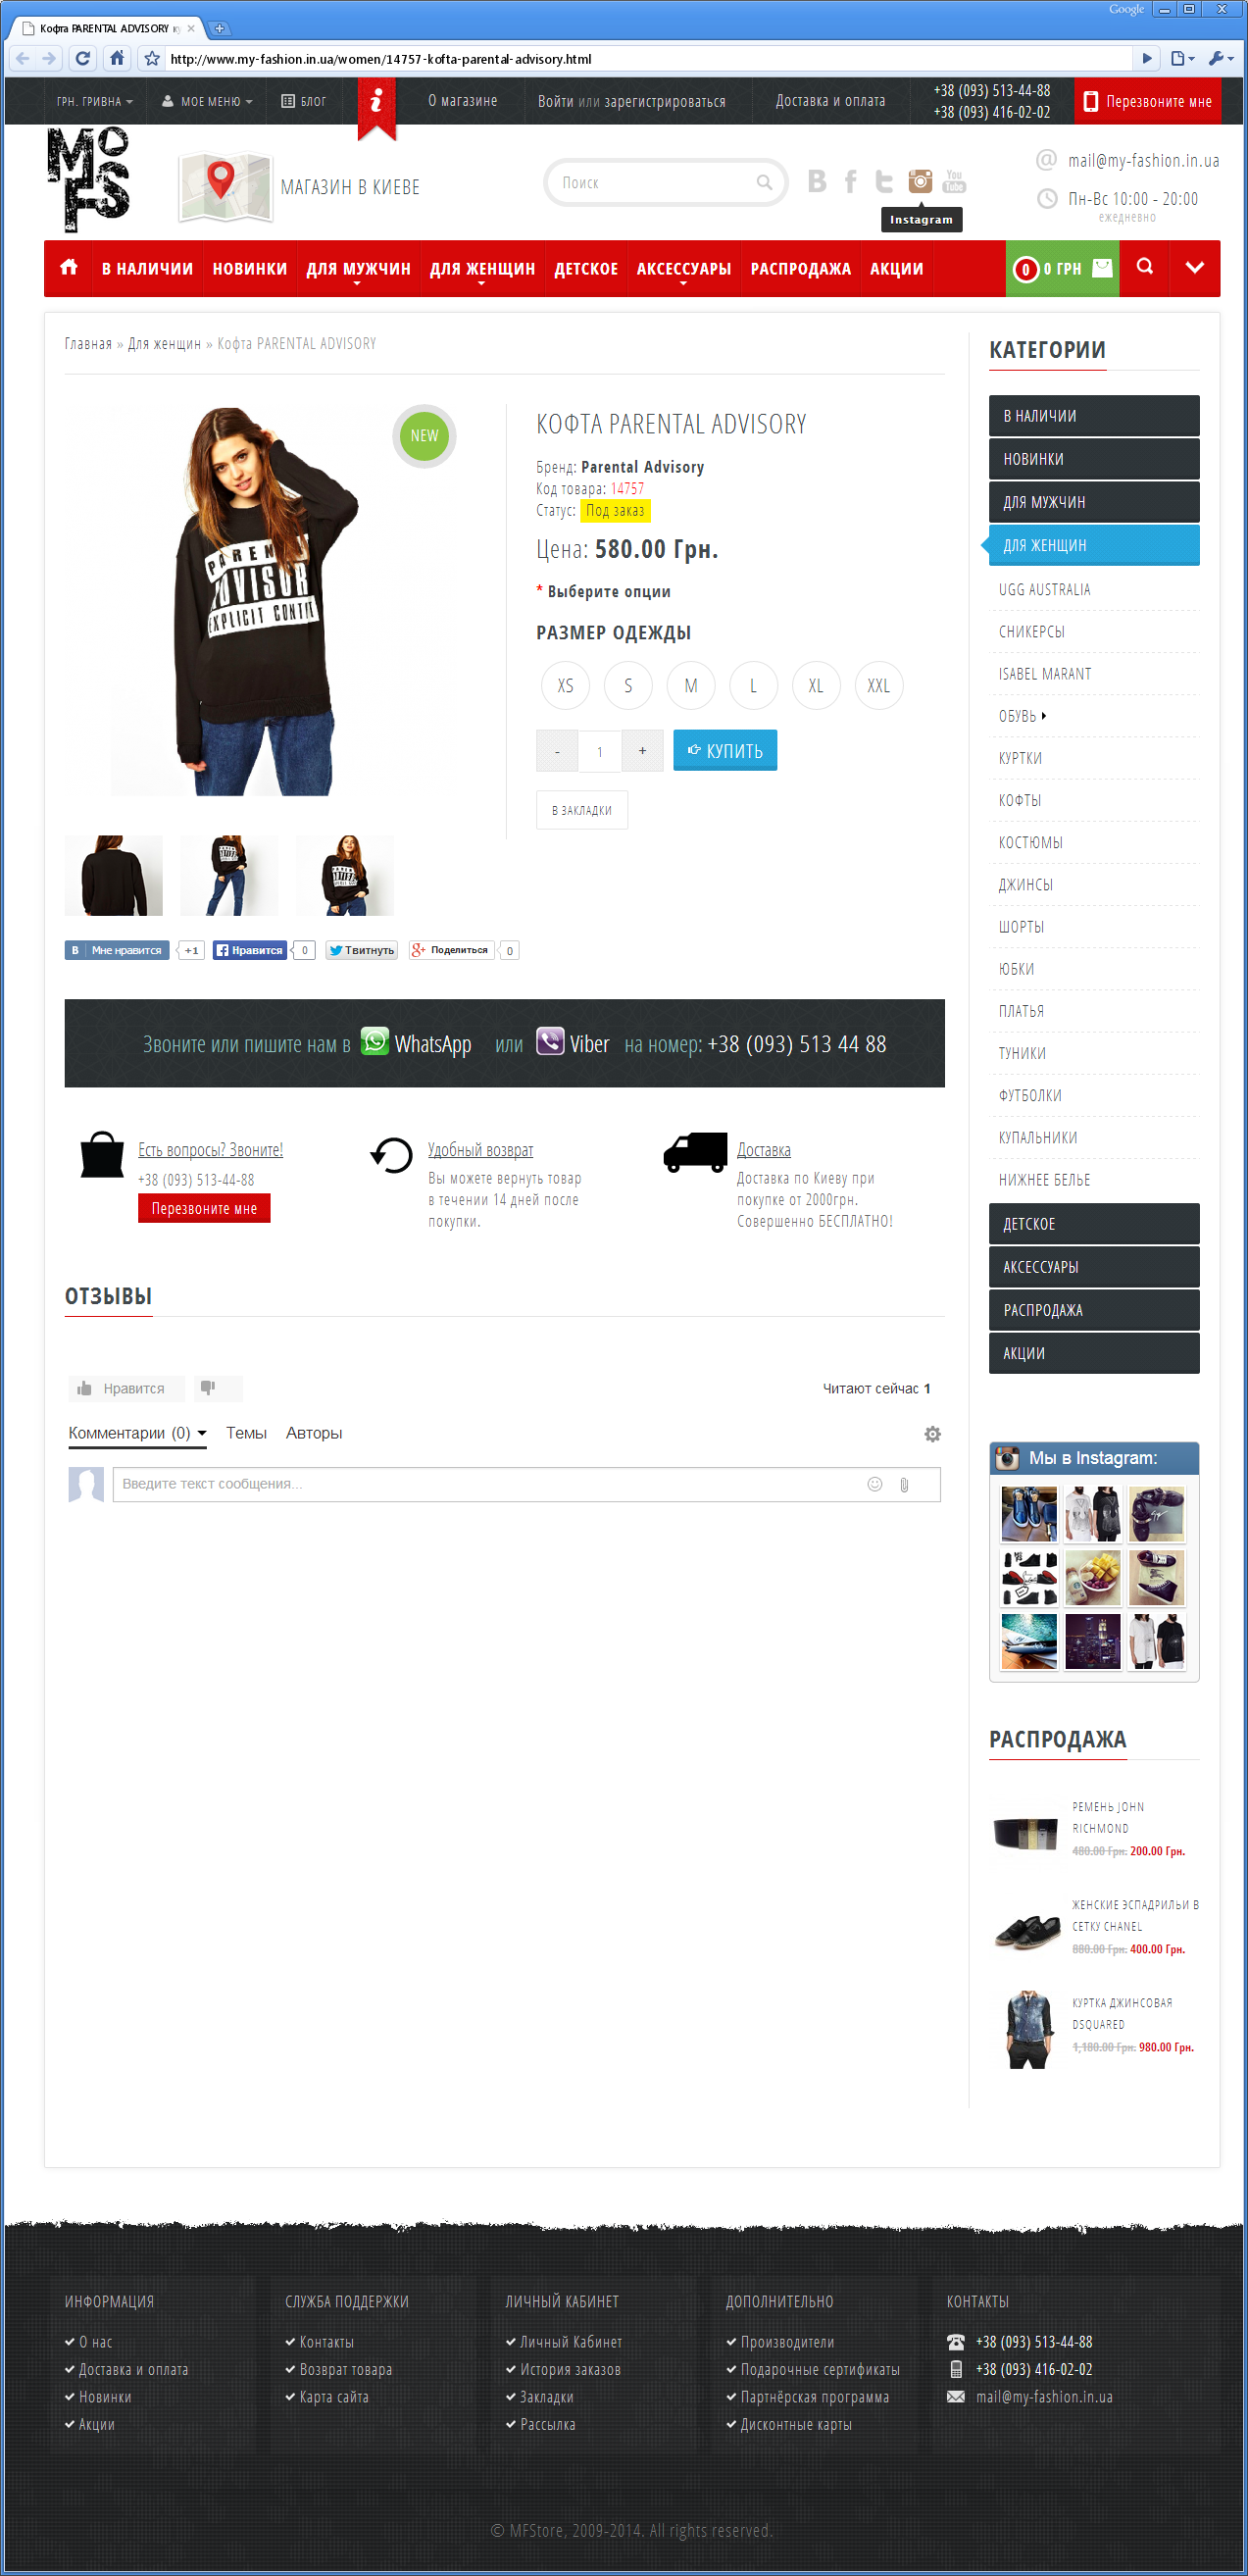 Redesign of an online store elite youth clothing | Evergreen projects 8